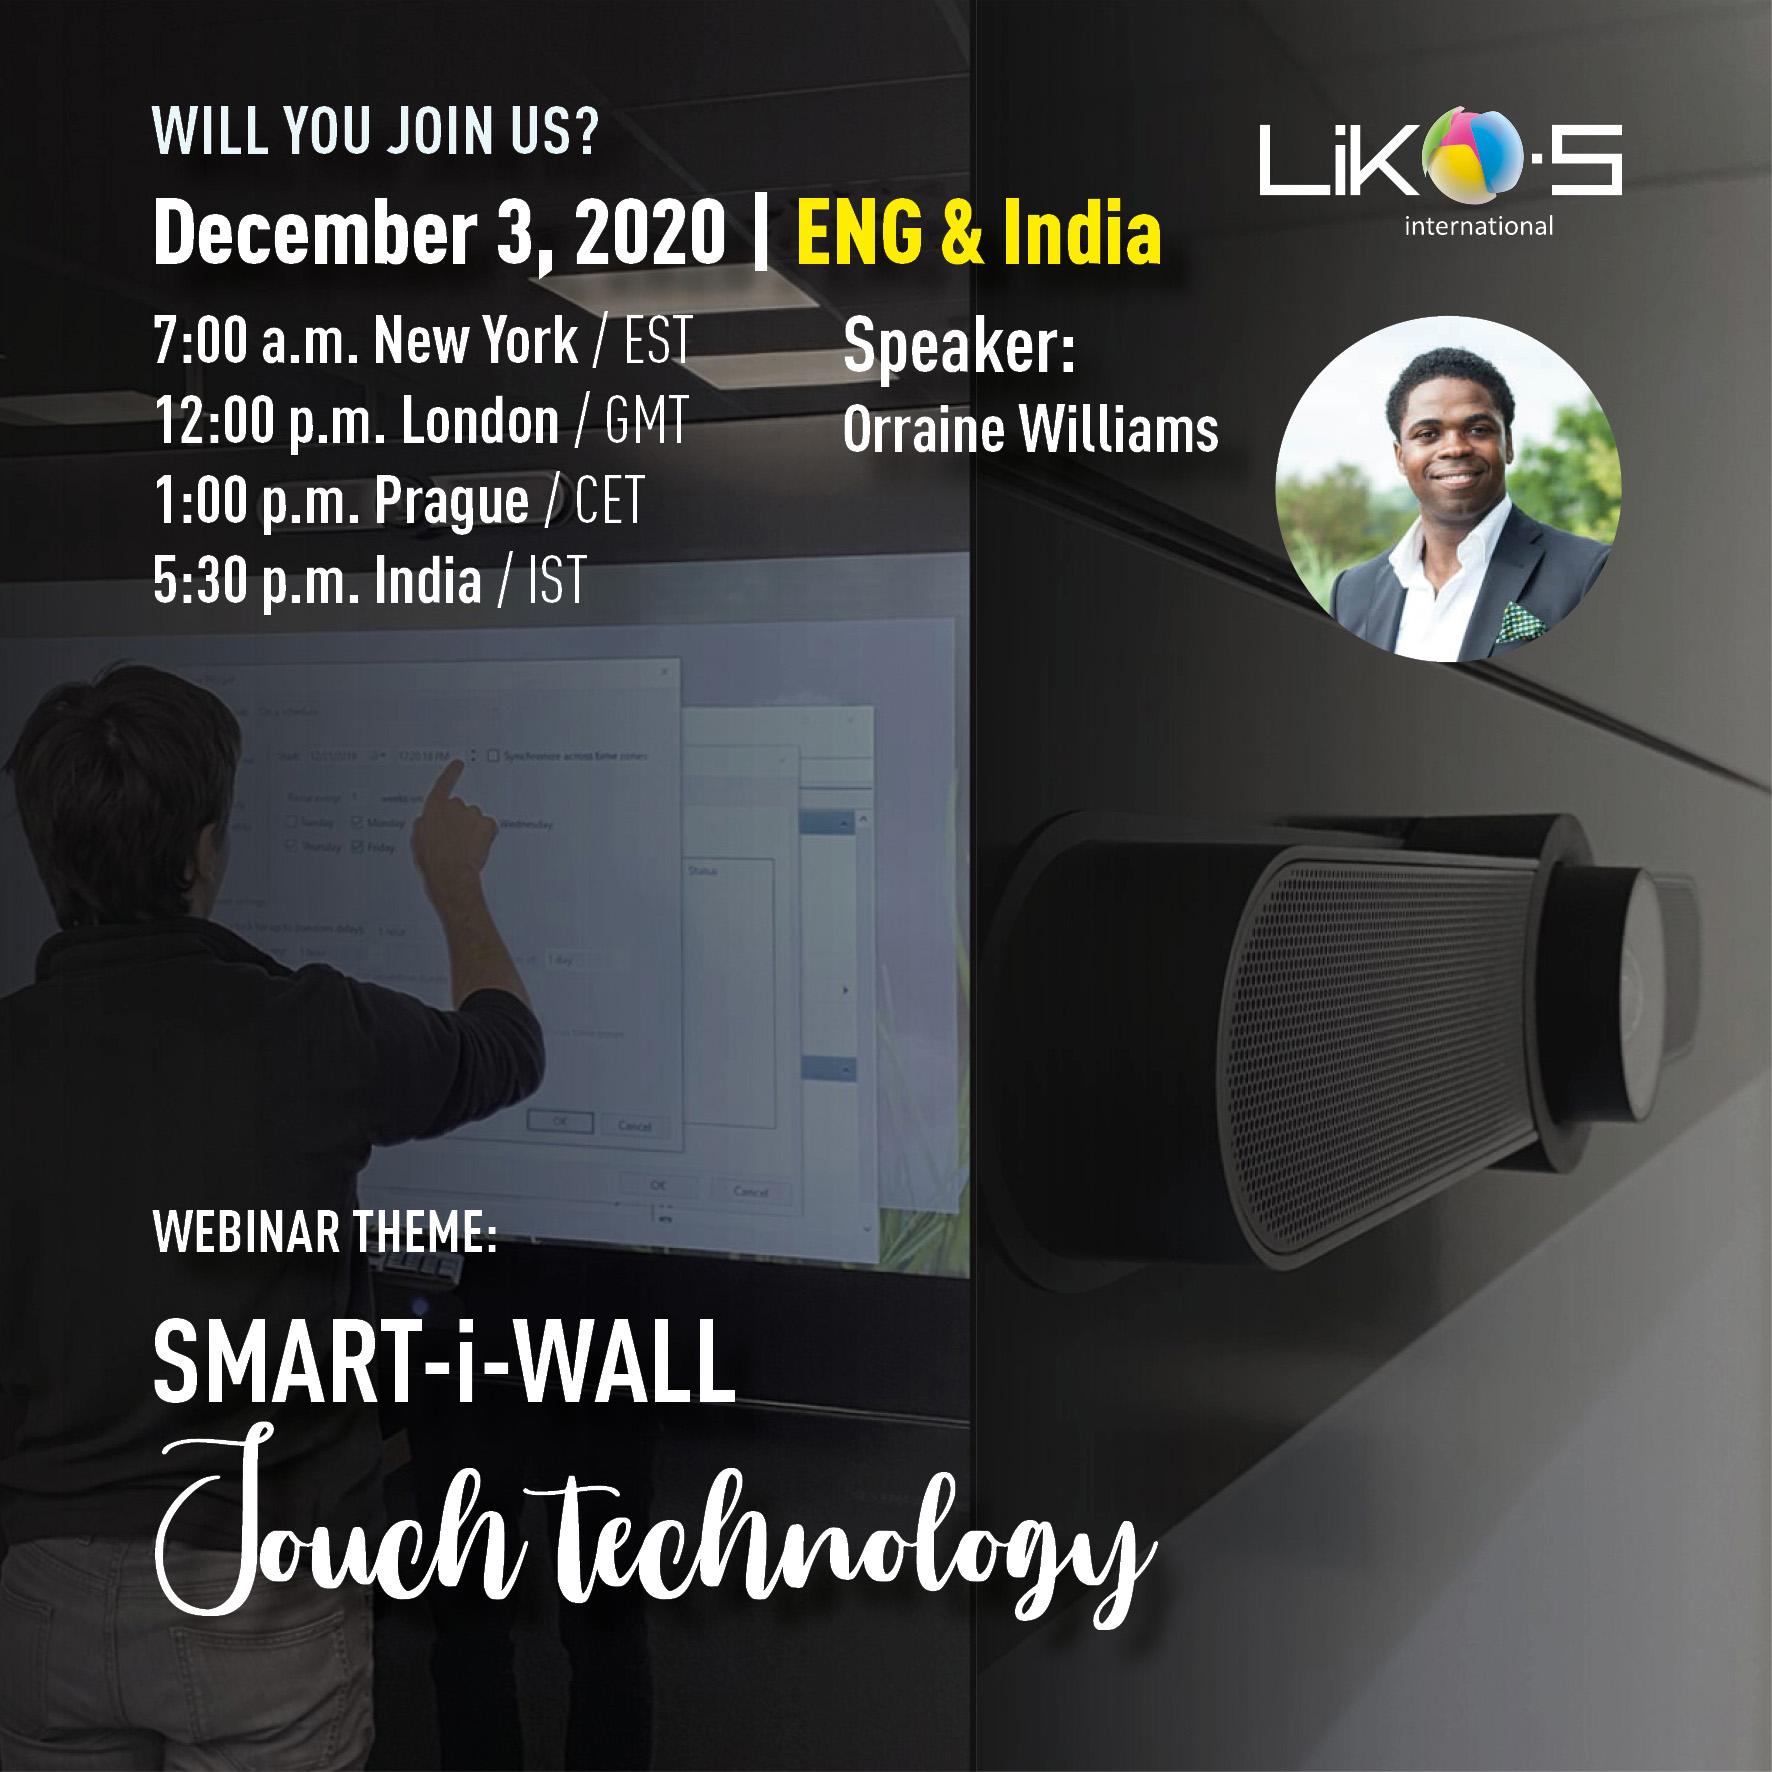 SMART-i-WALL – Touch technology